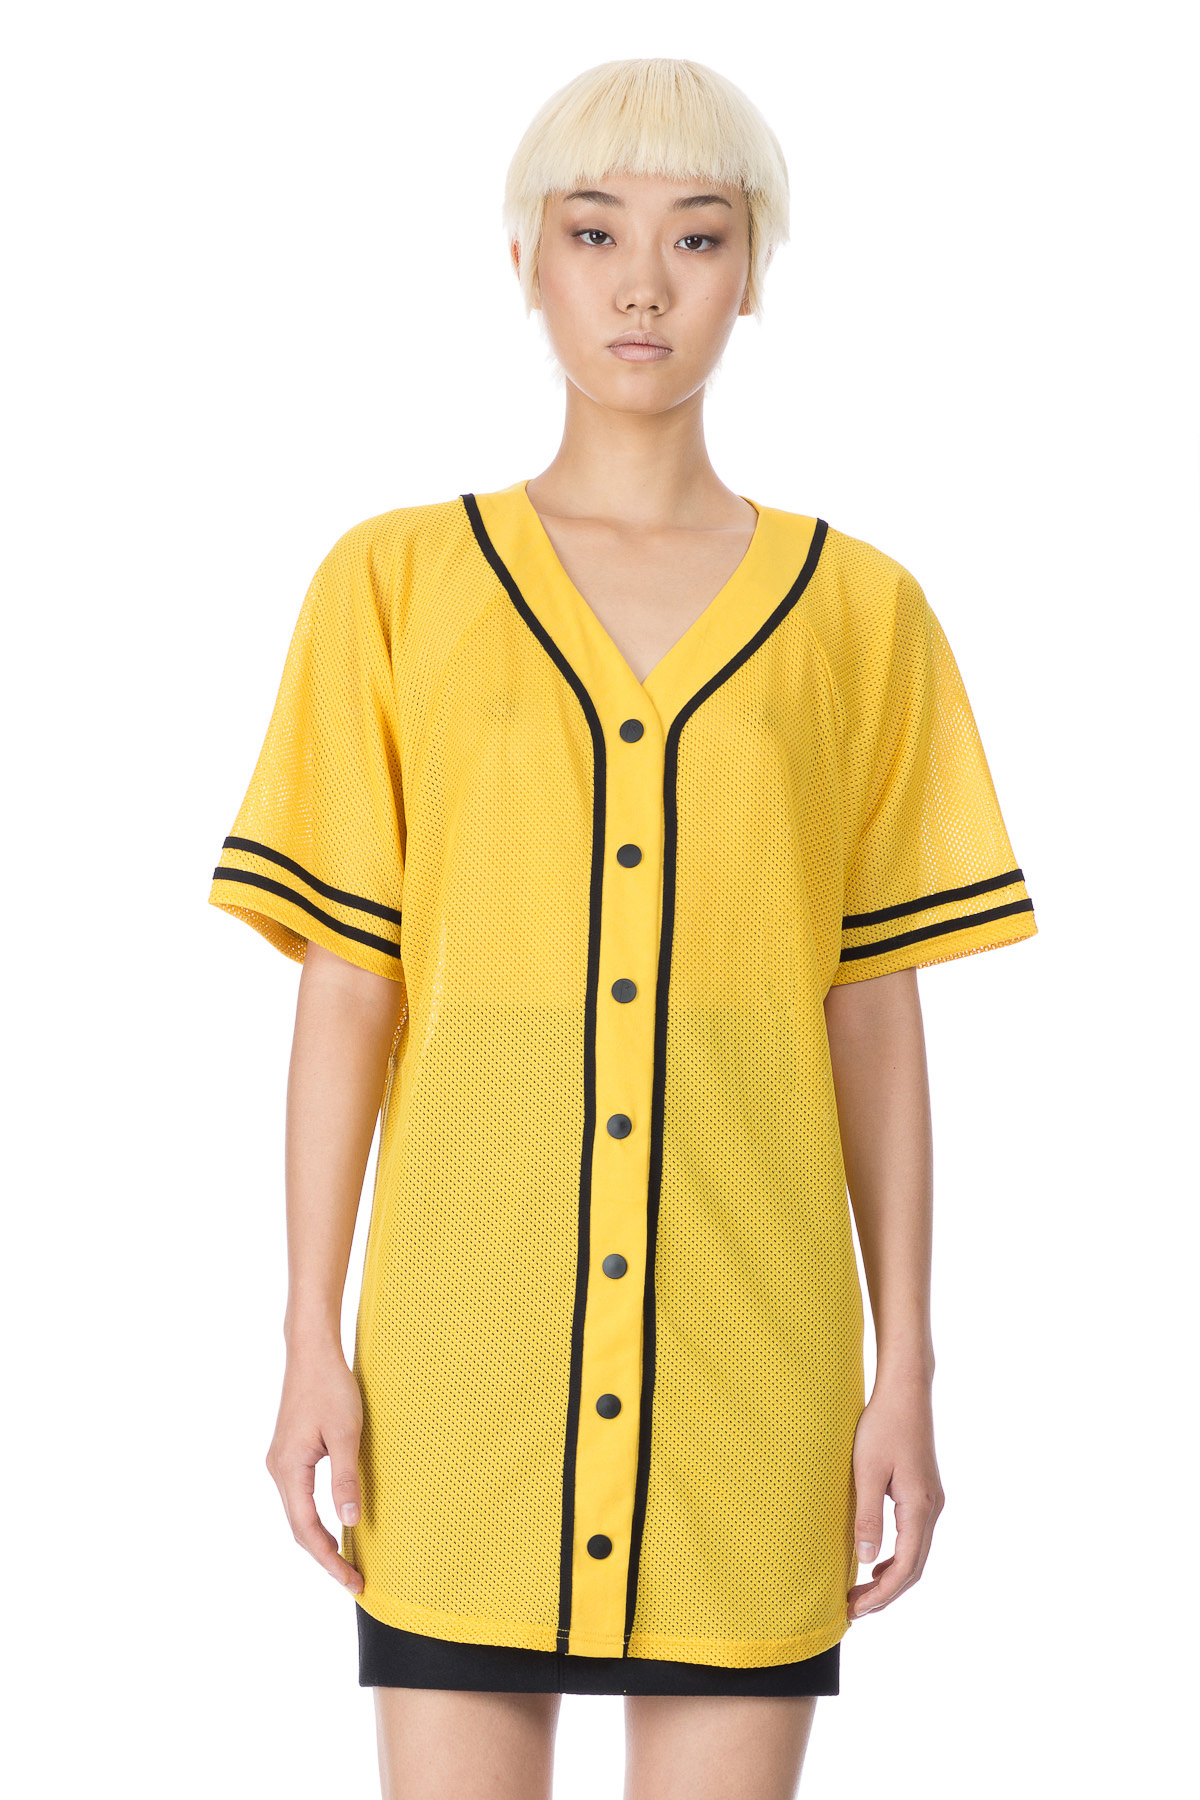 Rihanna For River Island Mesh Baseball Shirt Women